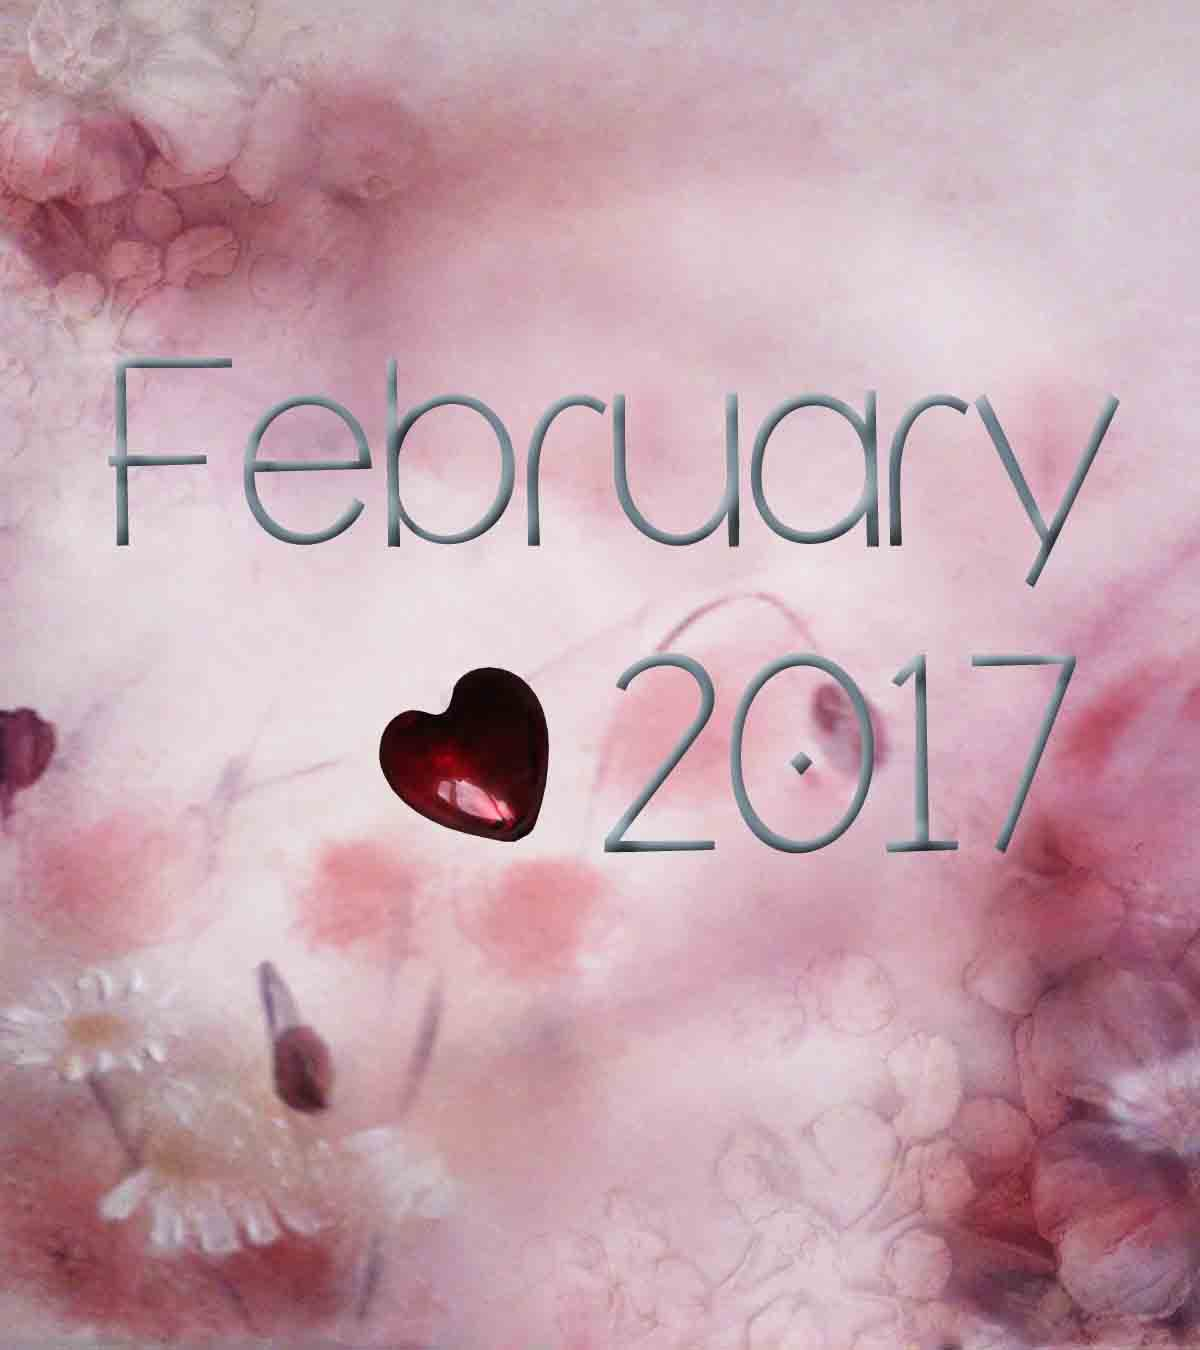 February Vt Message Christ S Atonement Is Evidence Of God S Love